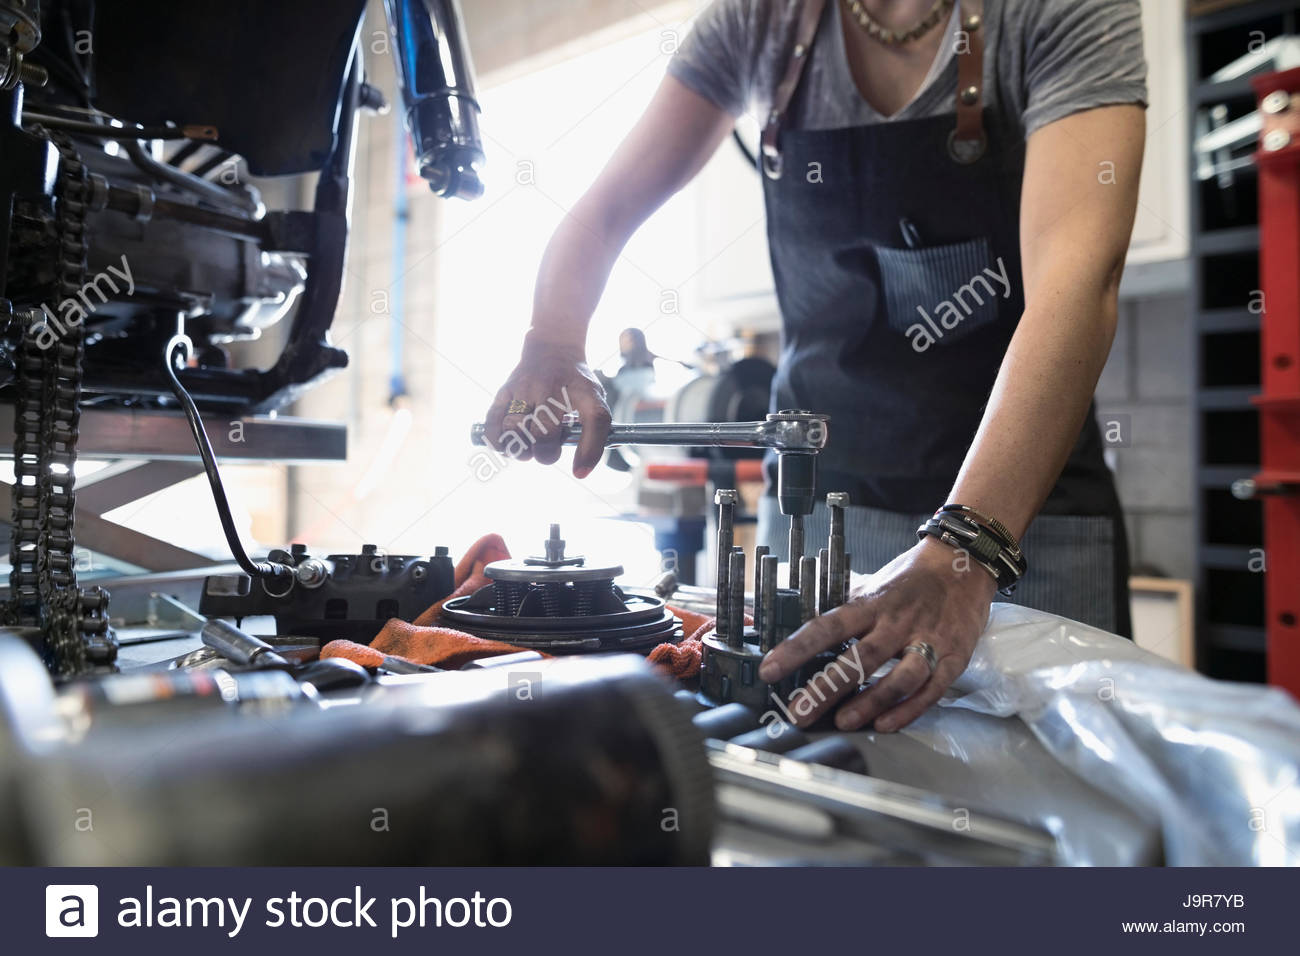 Female motorcycle mechanic using tools in auto repair shop - Stock Image